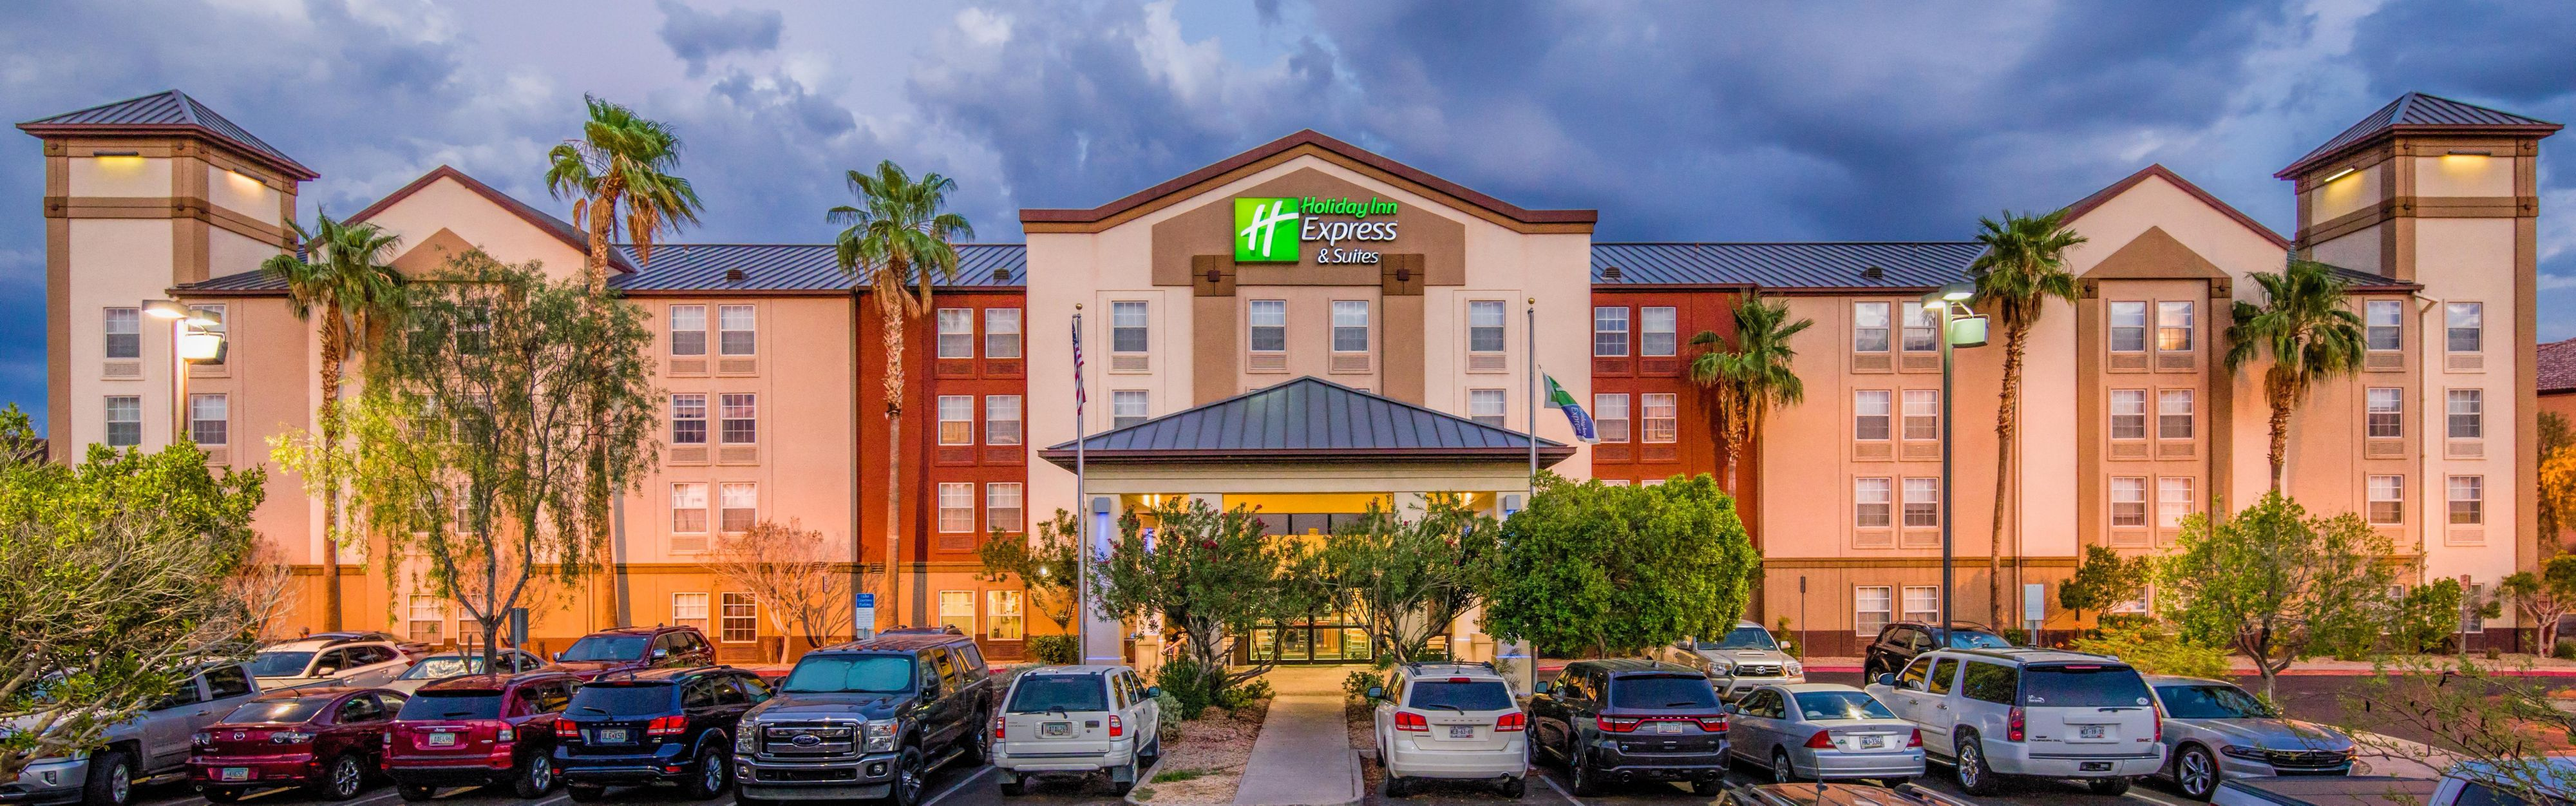 Holiday Inn Express & Suites Phoenix Airport image 0